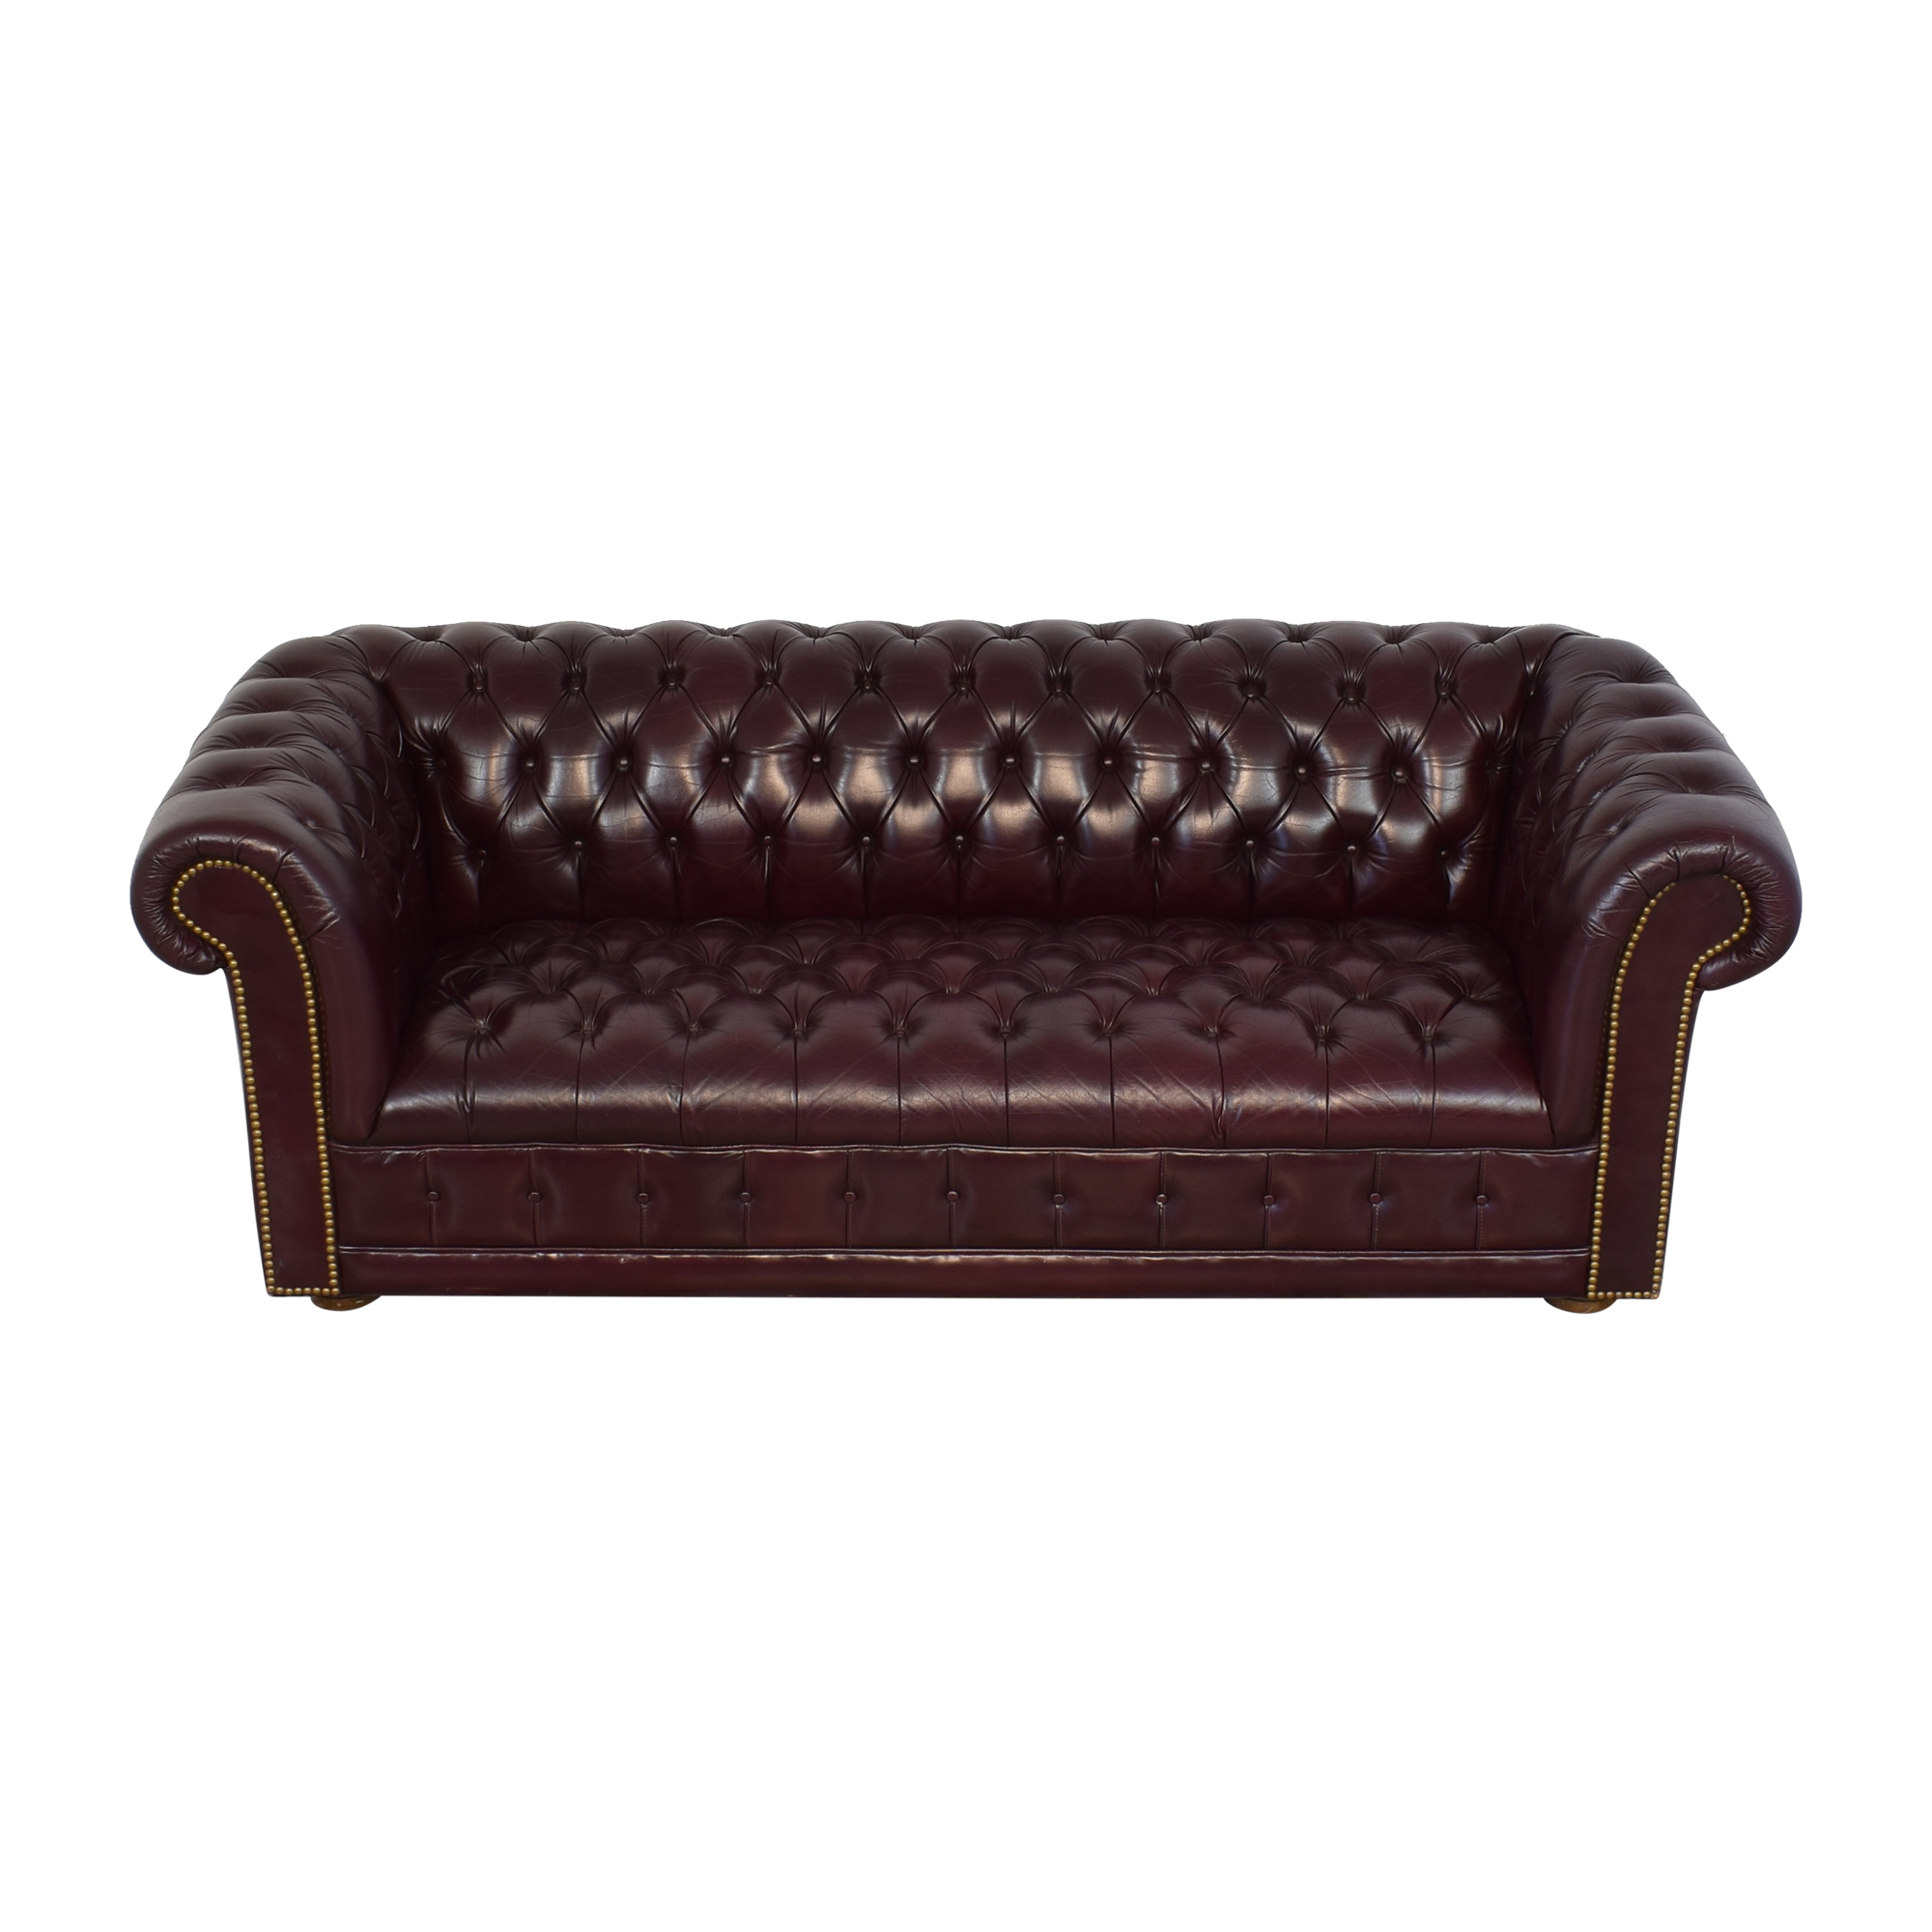 Leather Chesterfield Sofa used